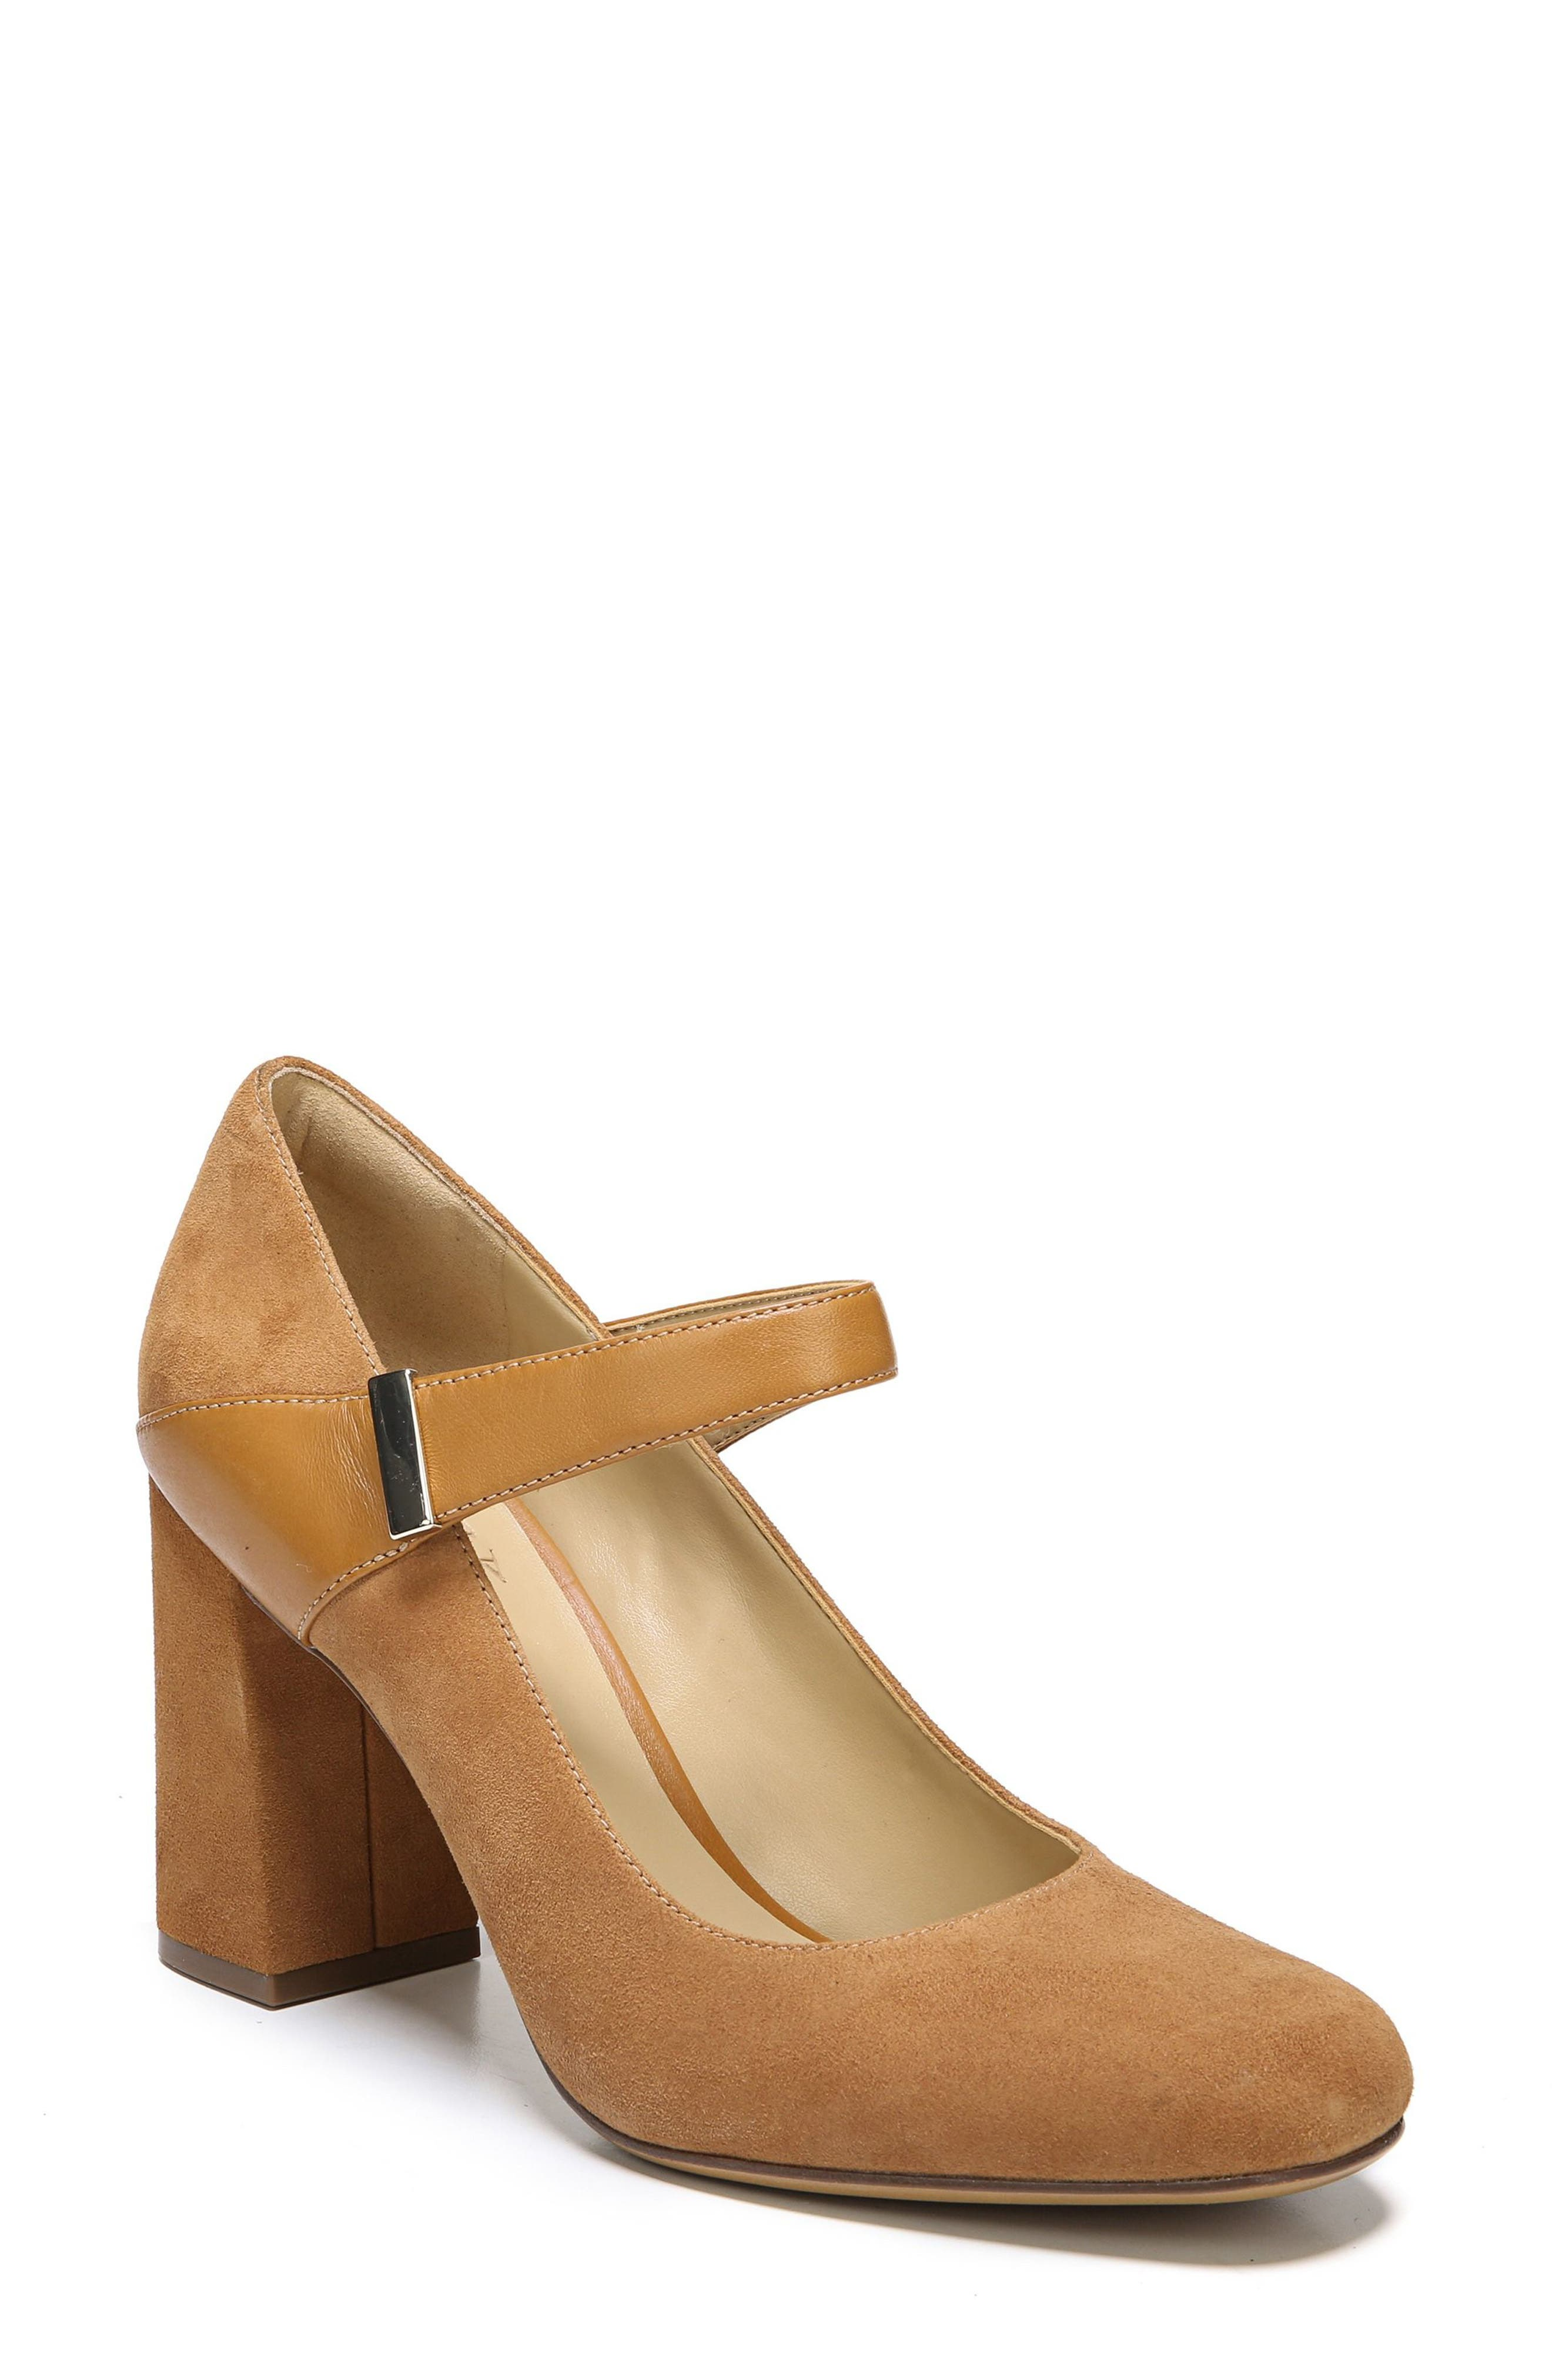 Reva Mary Jane Pump,                         Main,                         color, Camelot Suede